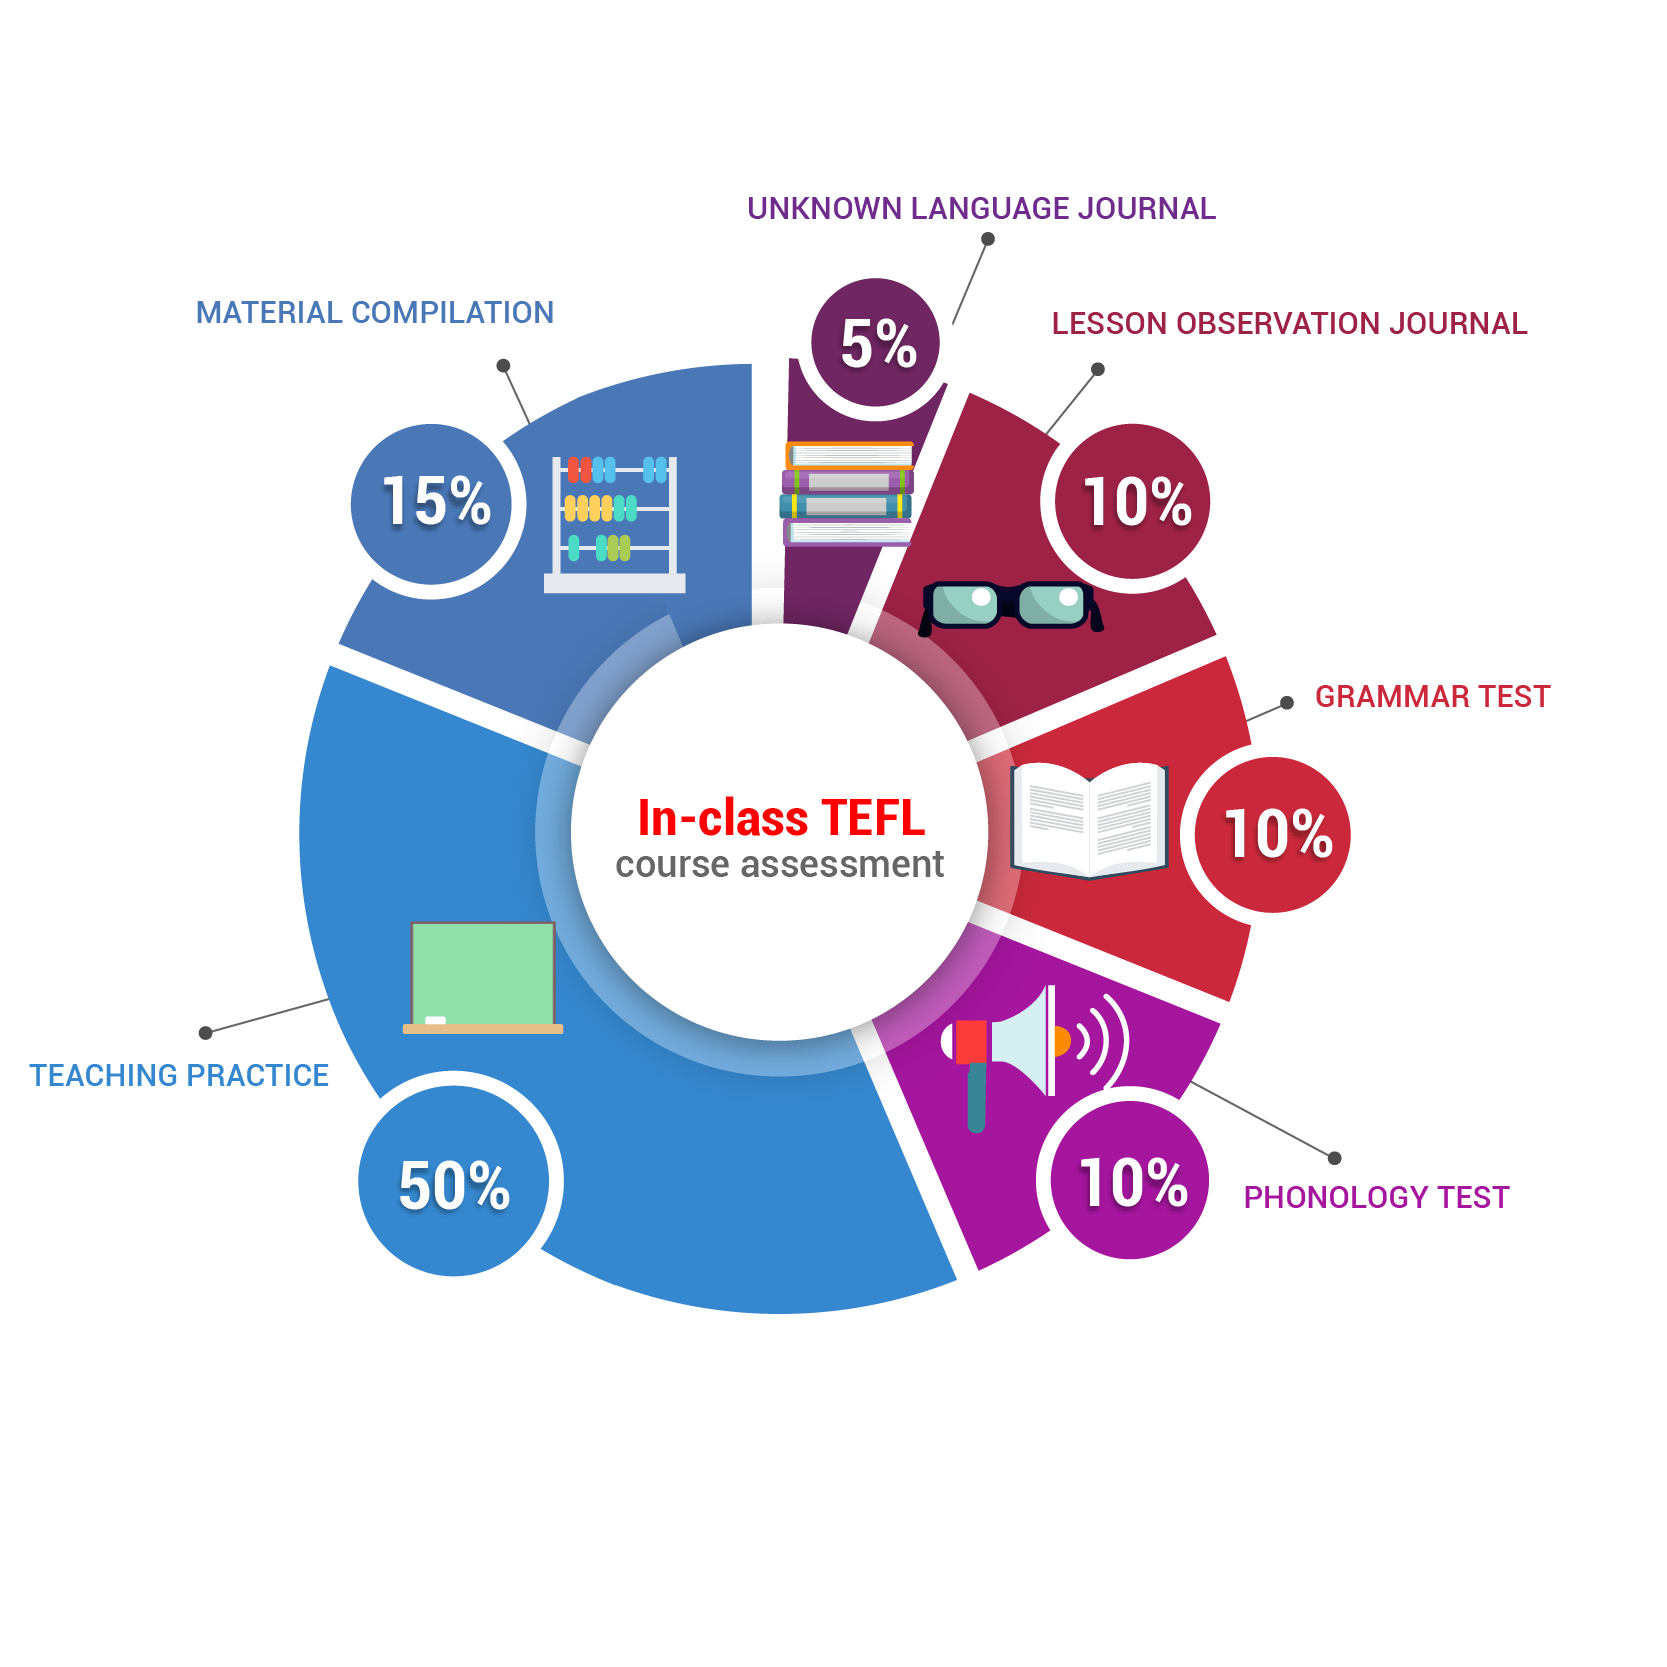 TEFL program at ITTT pie chart